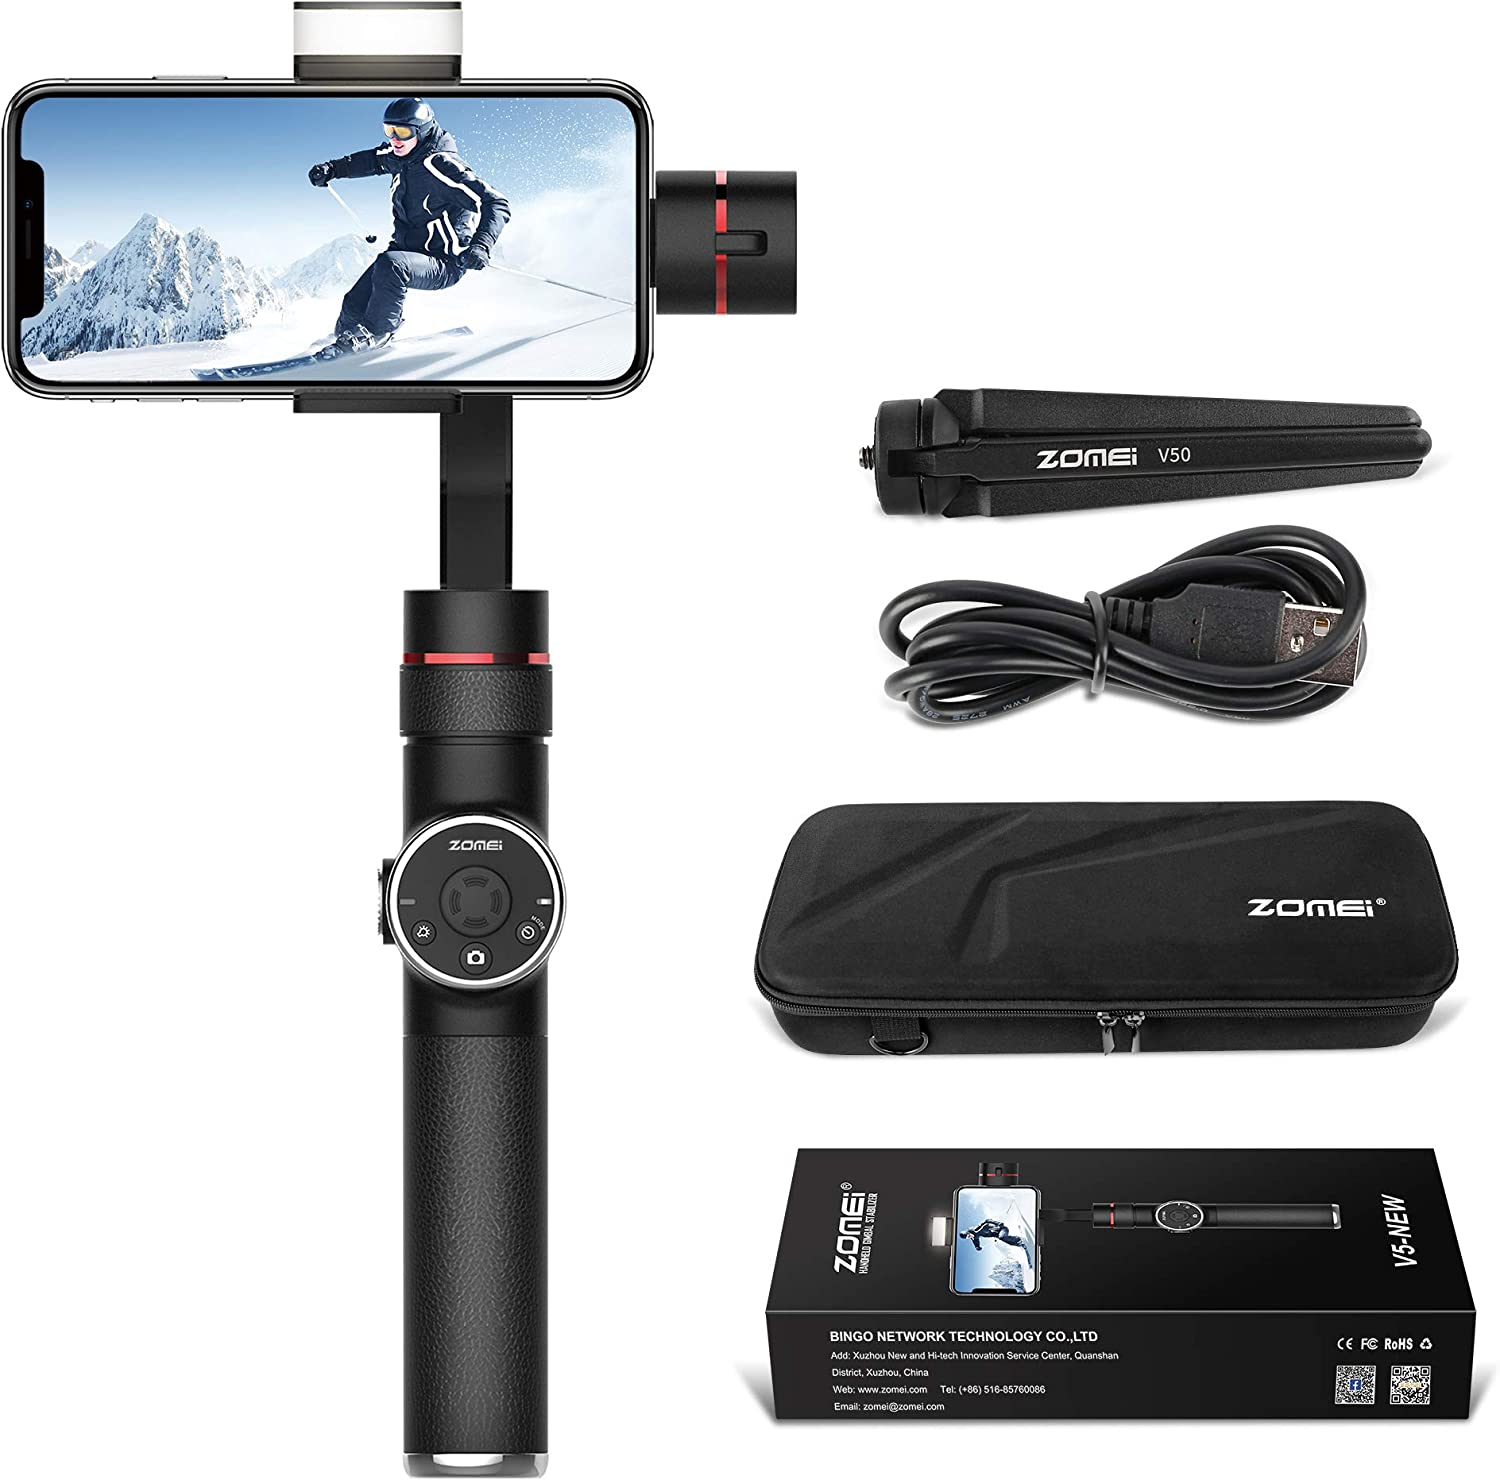 BONFOTO V5-New 3-Axis Handheld Gimbal Stabilizer w//Focus Pull /& Zoom for iPhone Xs Max Xr X 8 Plus 7 6 SE Android Smartphone Samsung Galaxy S9 S8 S7 S6 Q2 Edge Black S9 S8